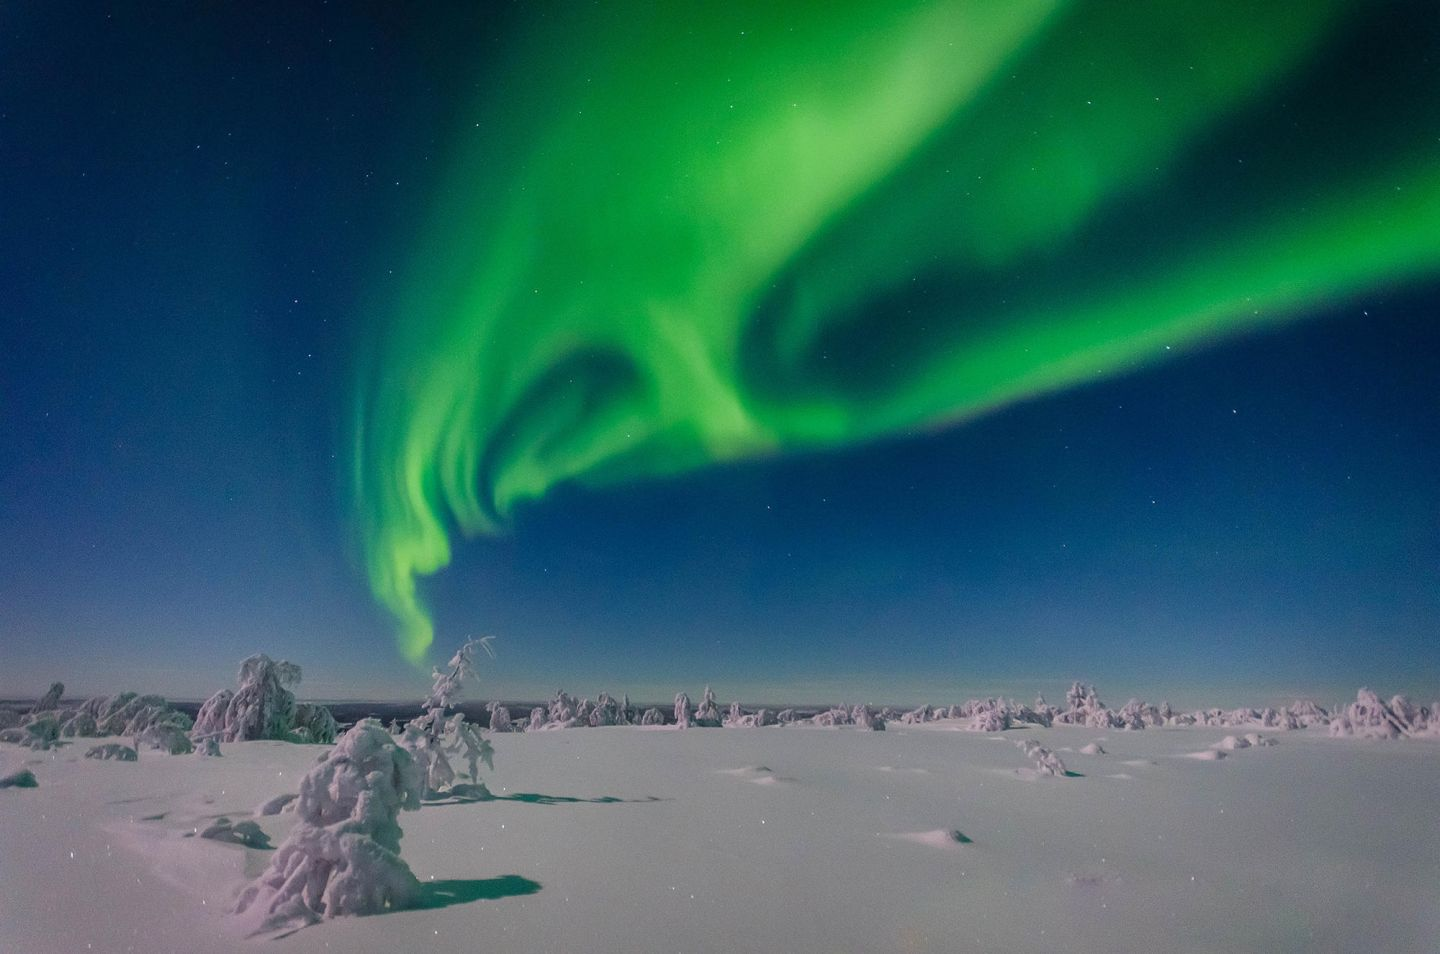 Auroras & snow in Lapland